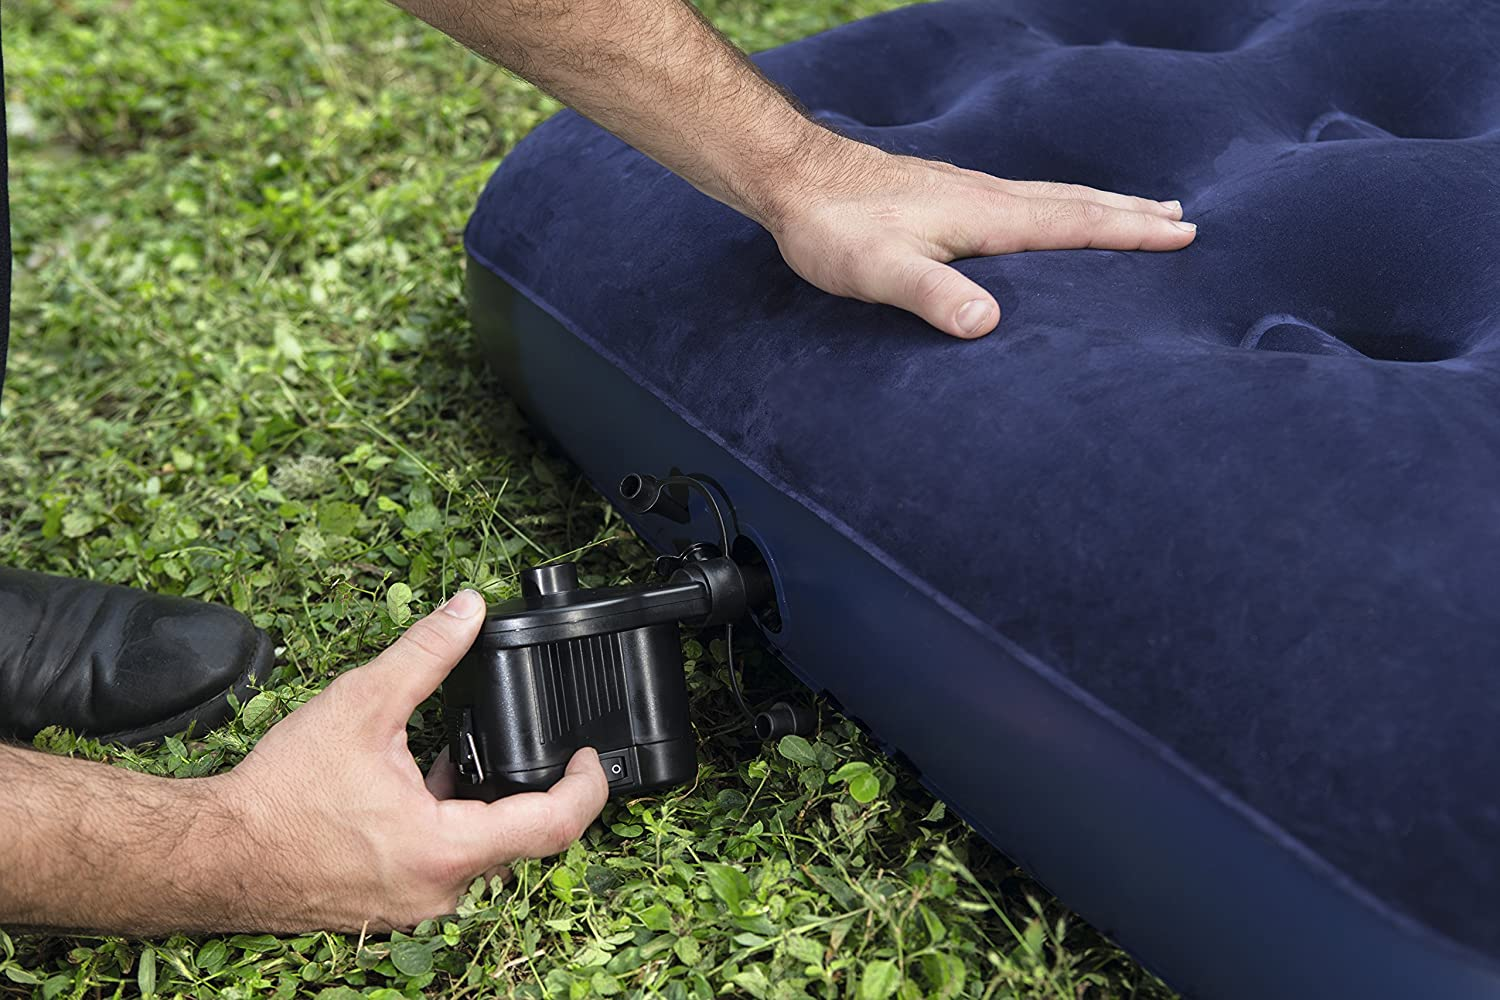 Bestway Flocked Air Bed - Colchon flocado de camping, 188 x 99 x 22 cm: Amazon.es: Deportes y aire libre